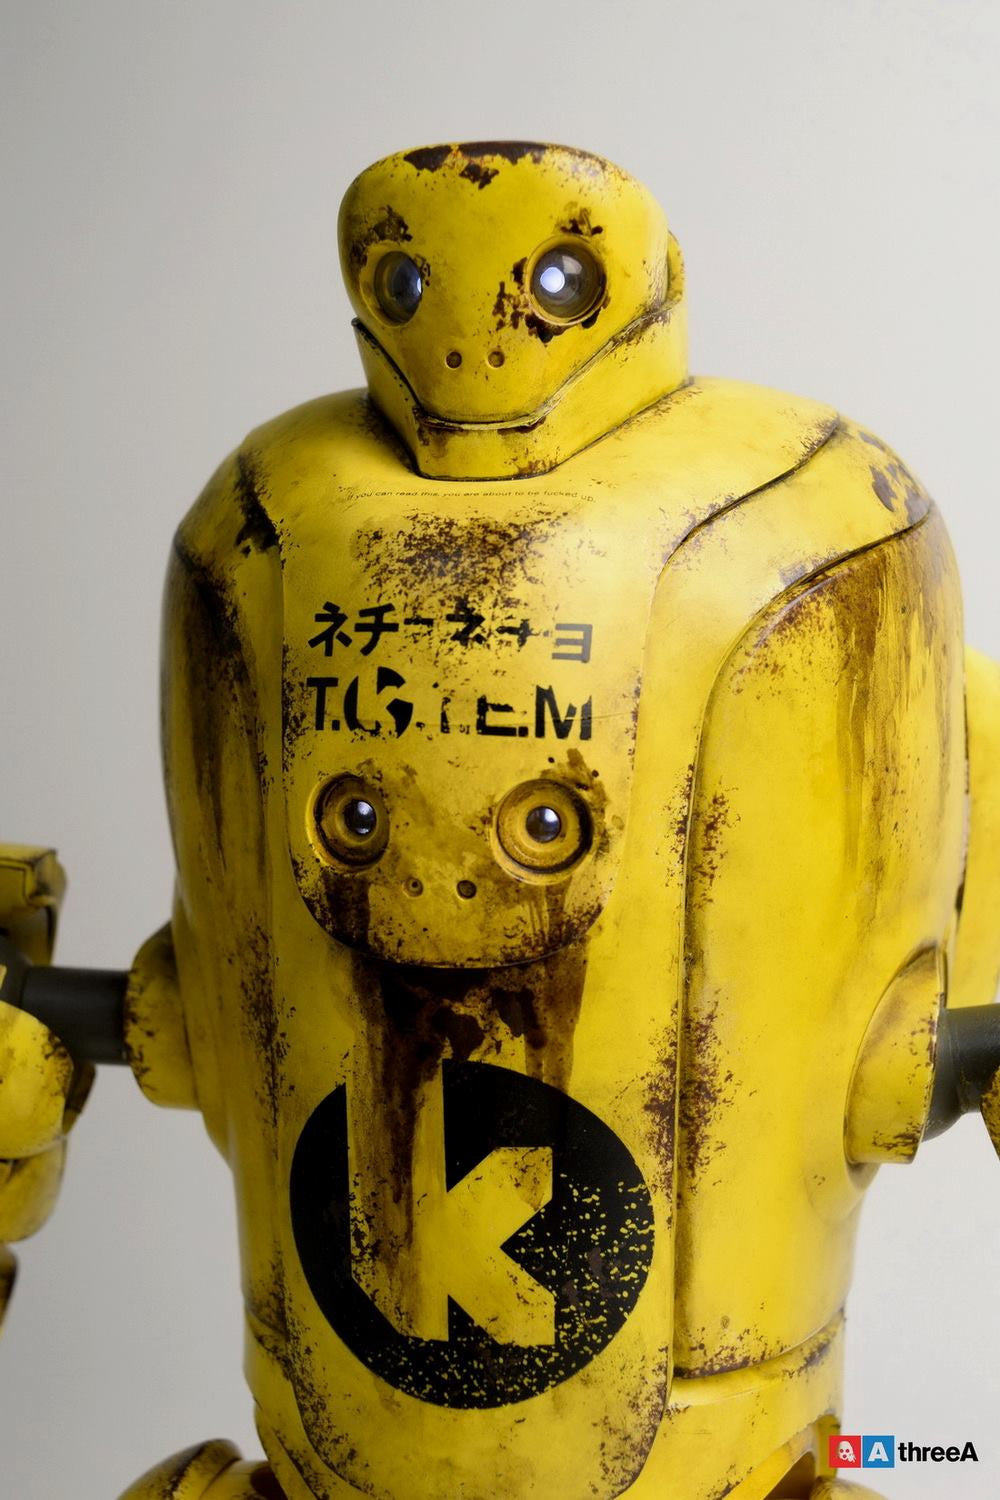 ThreeA - Evenfall - 1/6 T.O.T.E.M Thug Pugillo - K Striker-047 (Yellow) - Marvelous Toys - 12